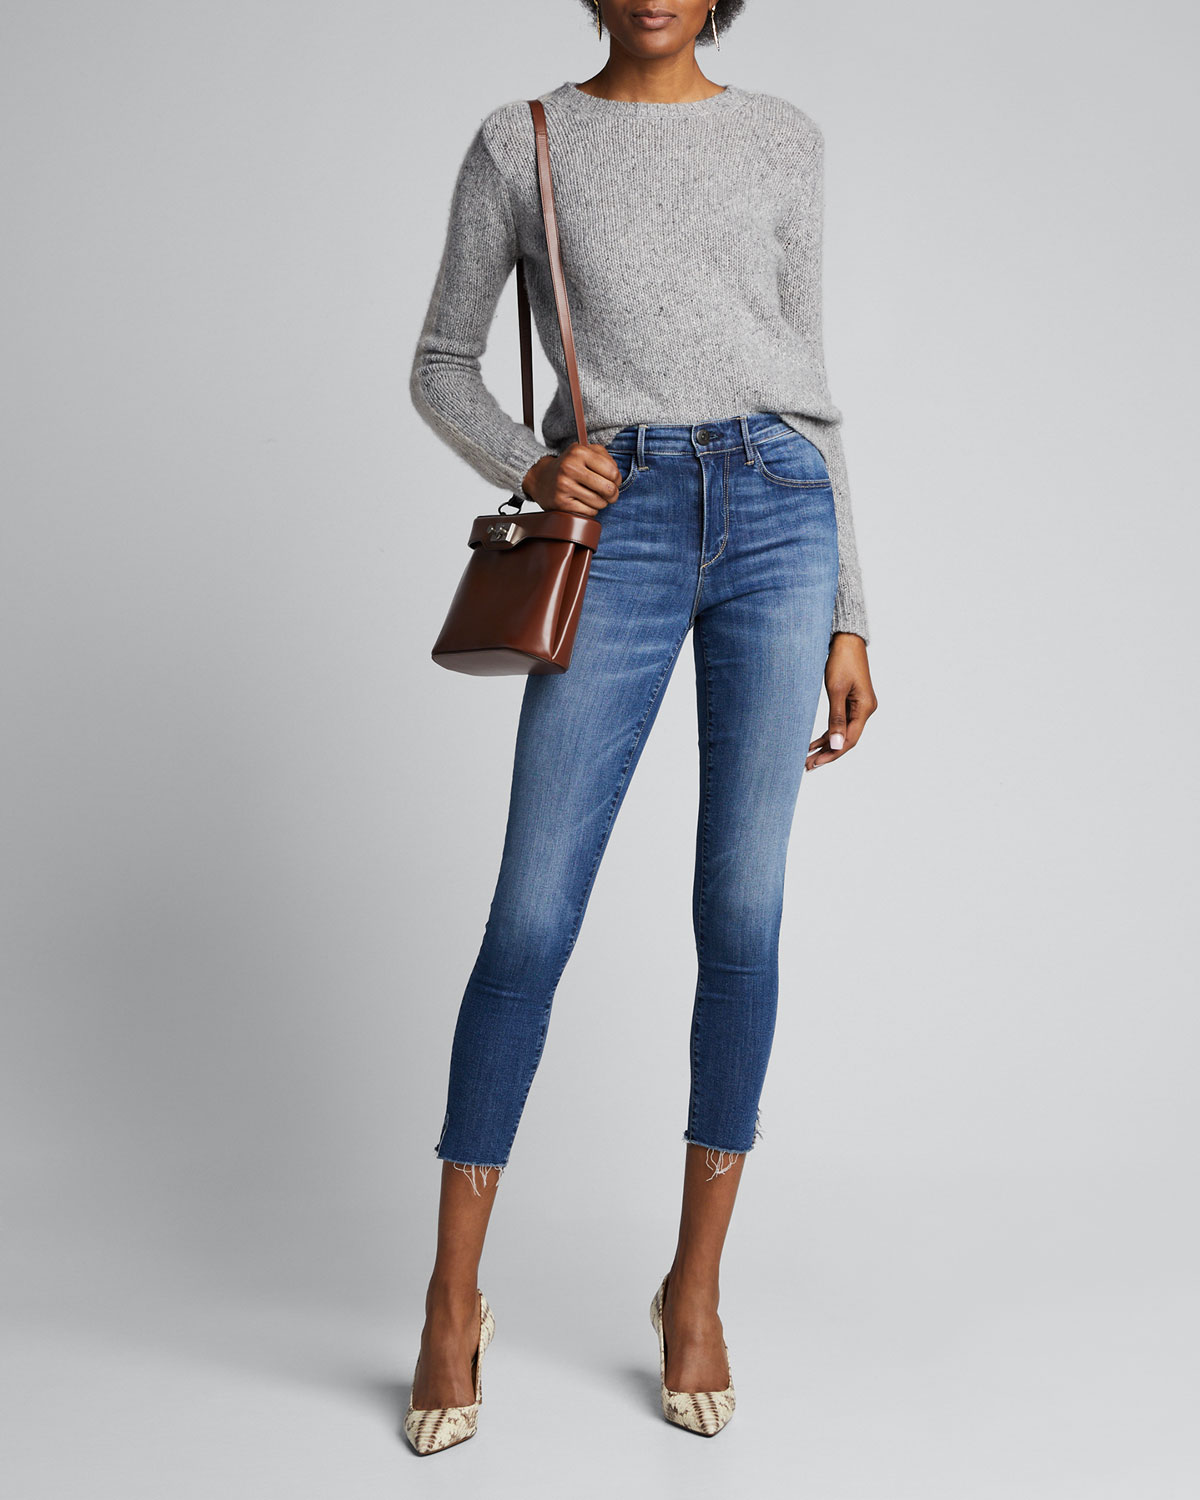 3x1 Jeans MID-RISE SKINNY CROP JEANS